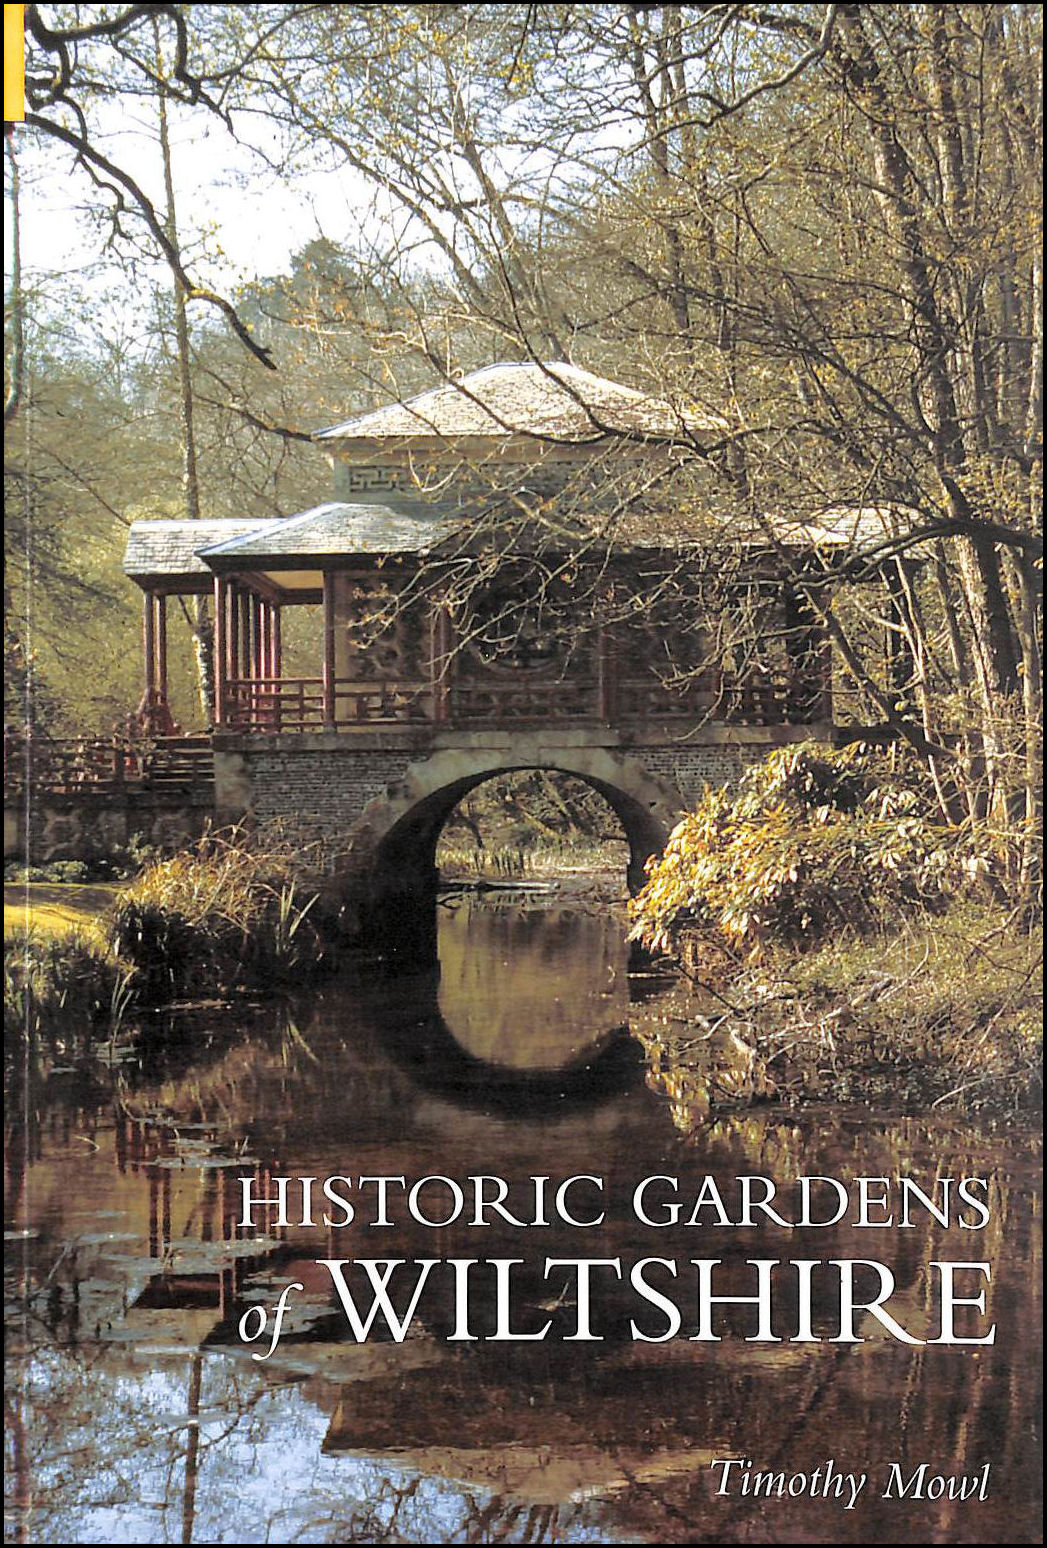 Historic Gardens of Wiltshire, Timothy Mowl